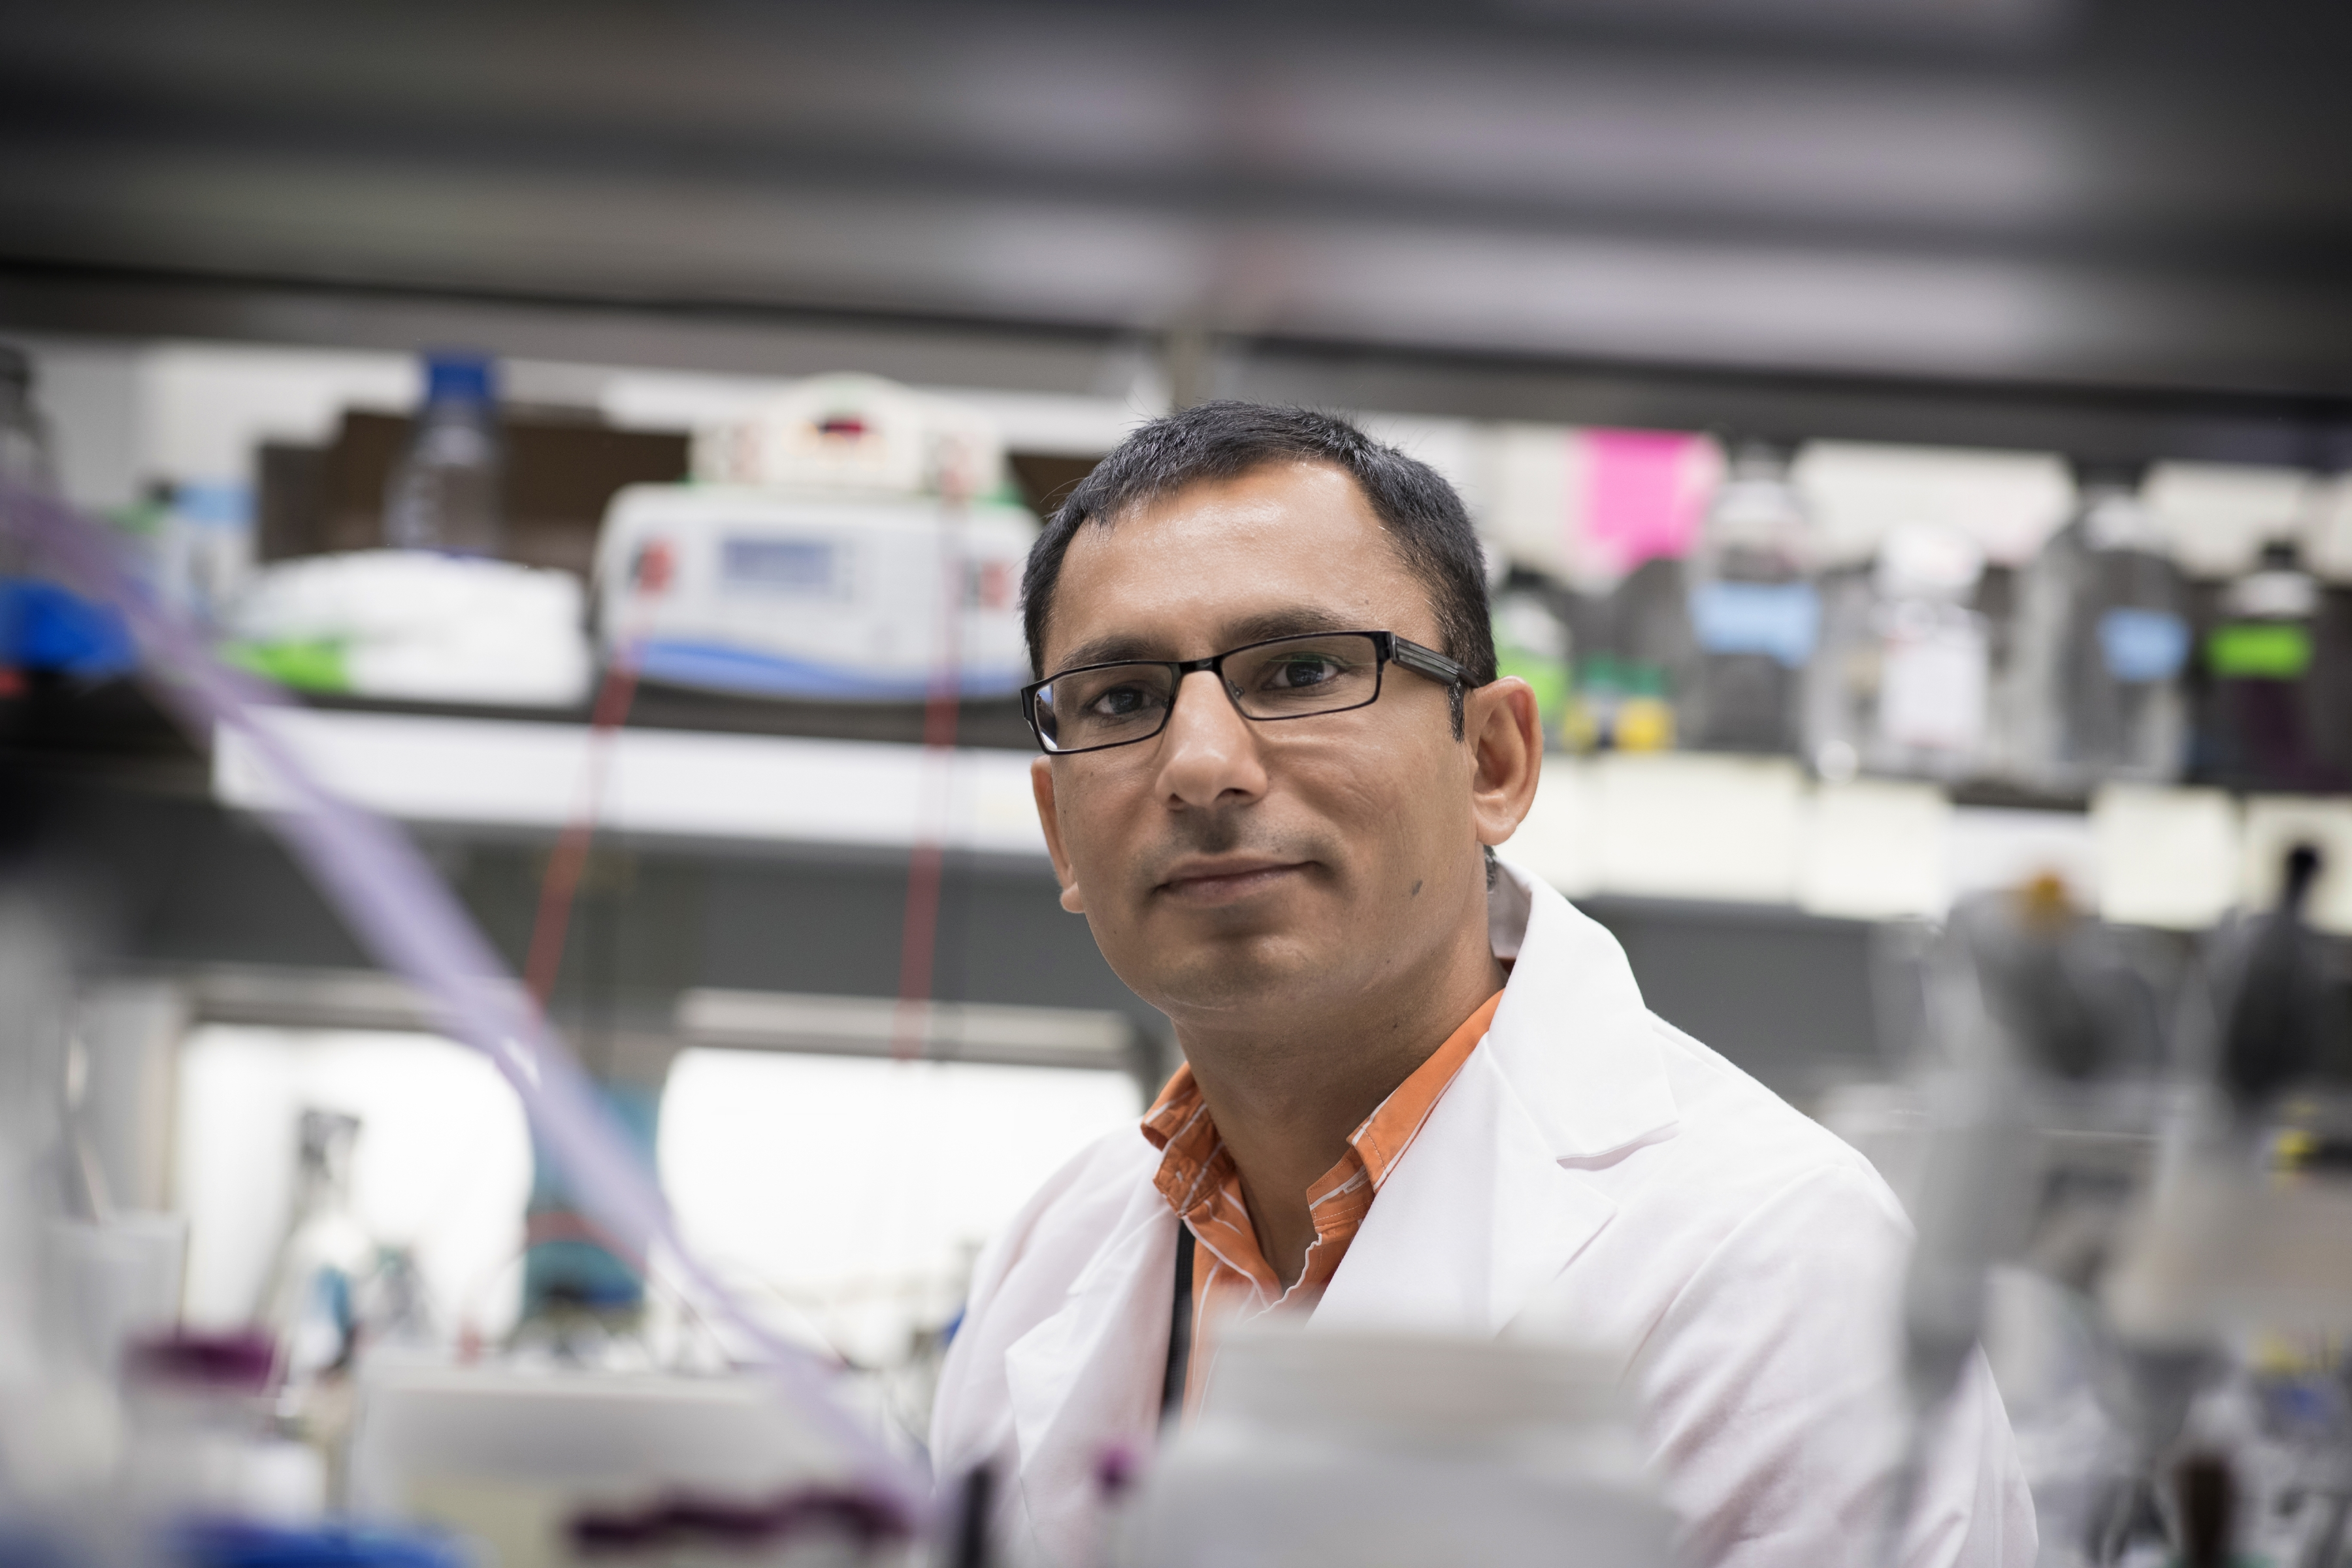 Jogender Tushir-Singh, PhD, stands in the lab